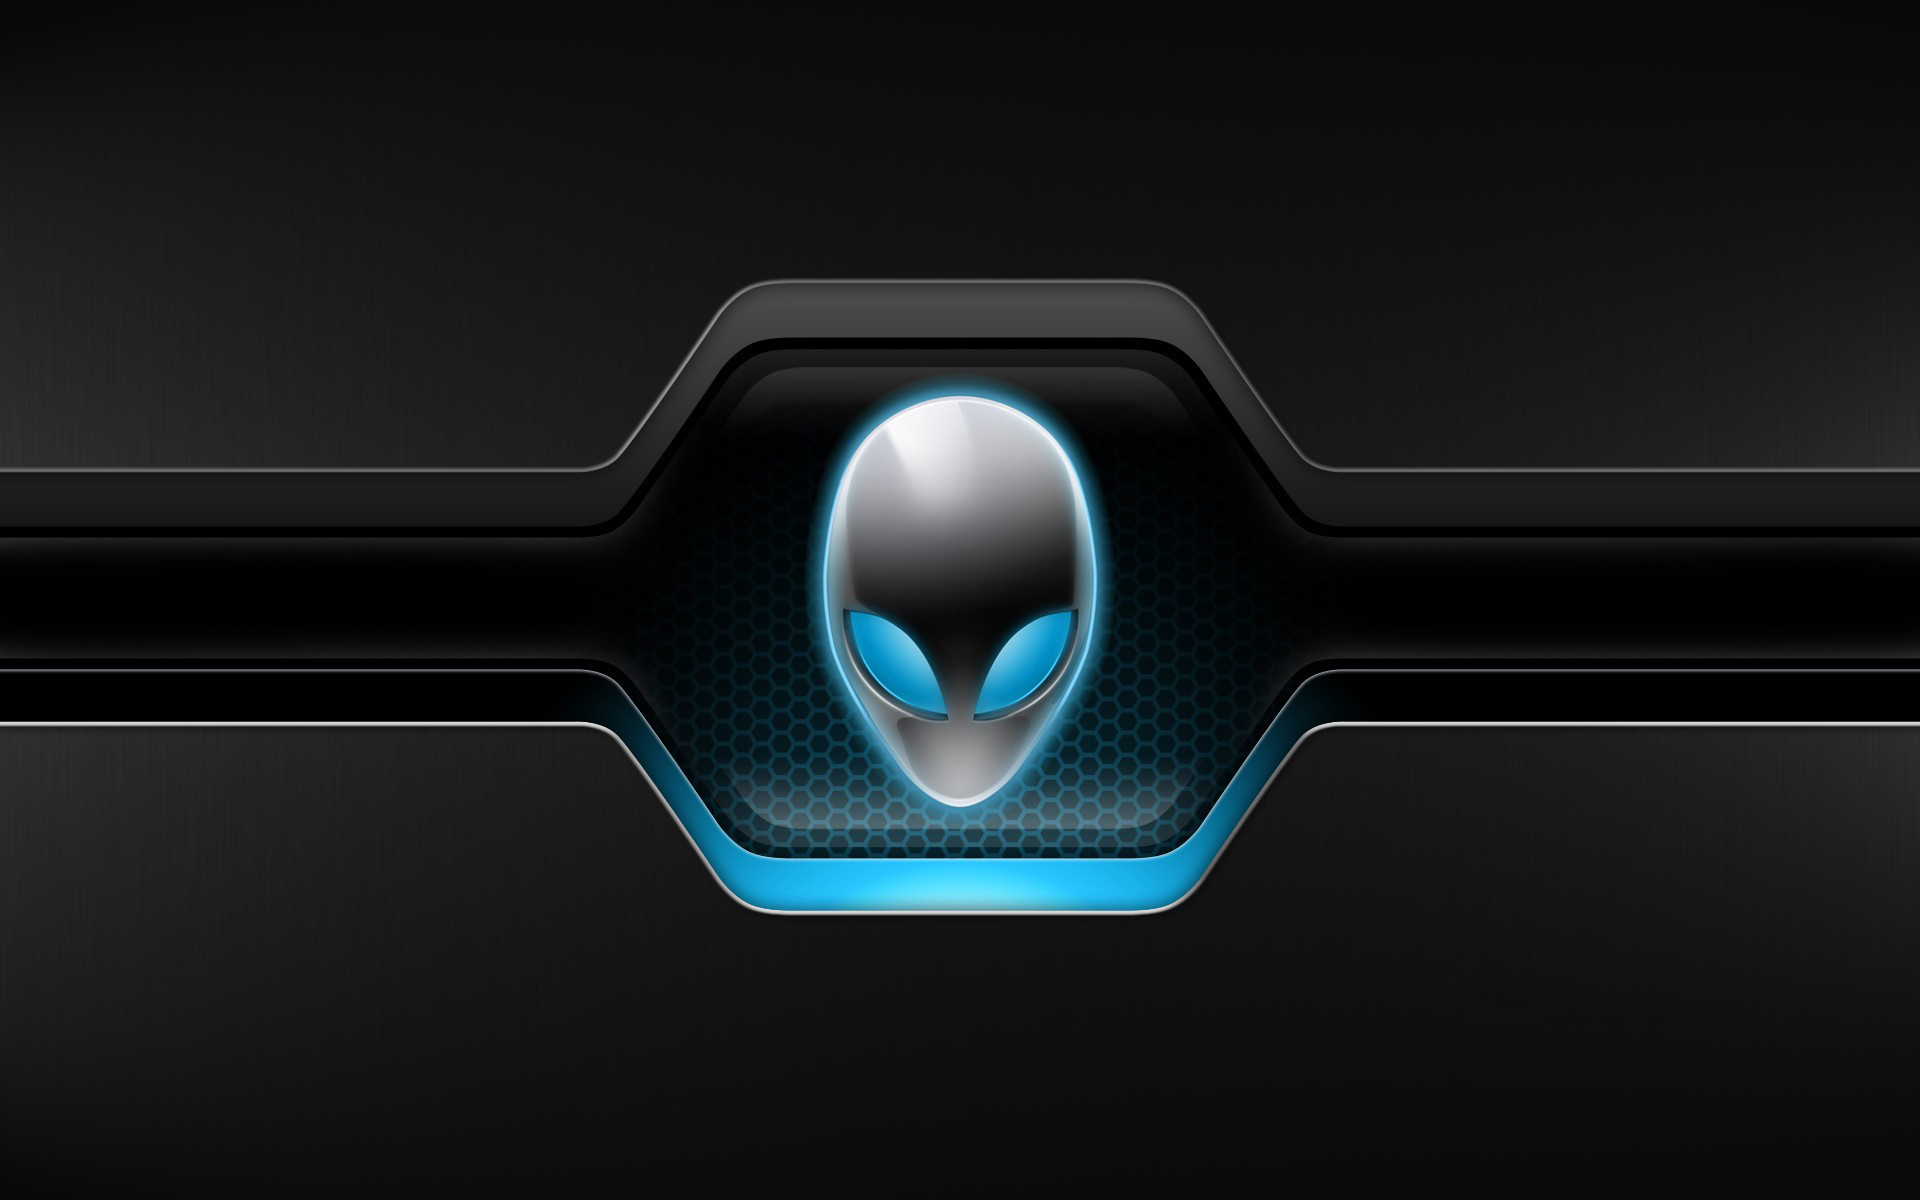 alienware full hd wallpaper and background image | 1920x1200 | id:385455